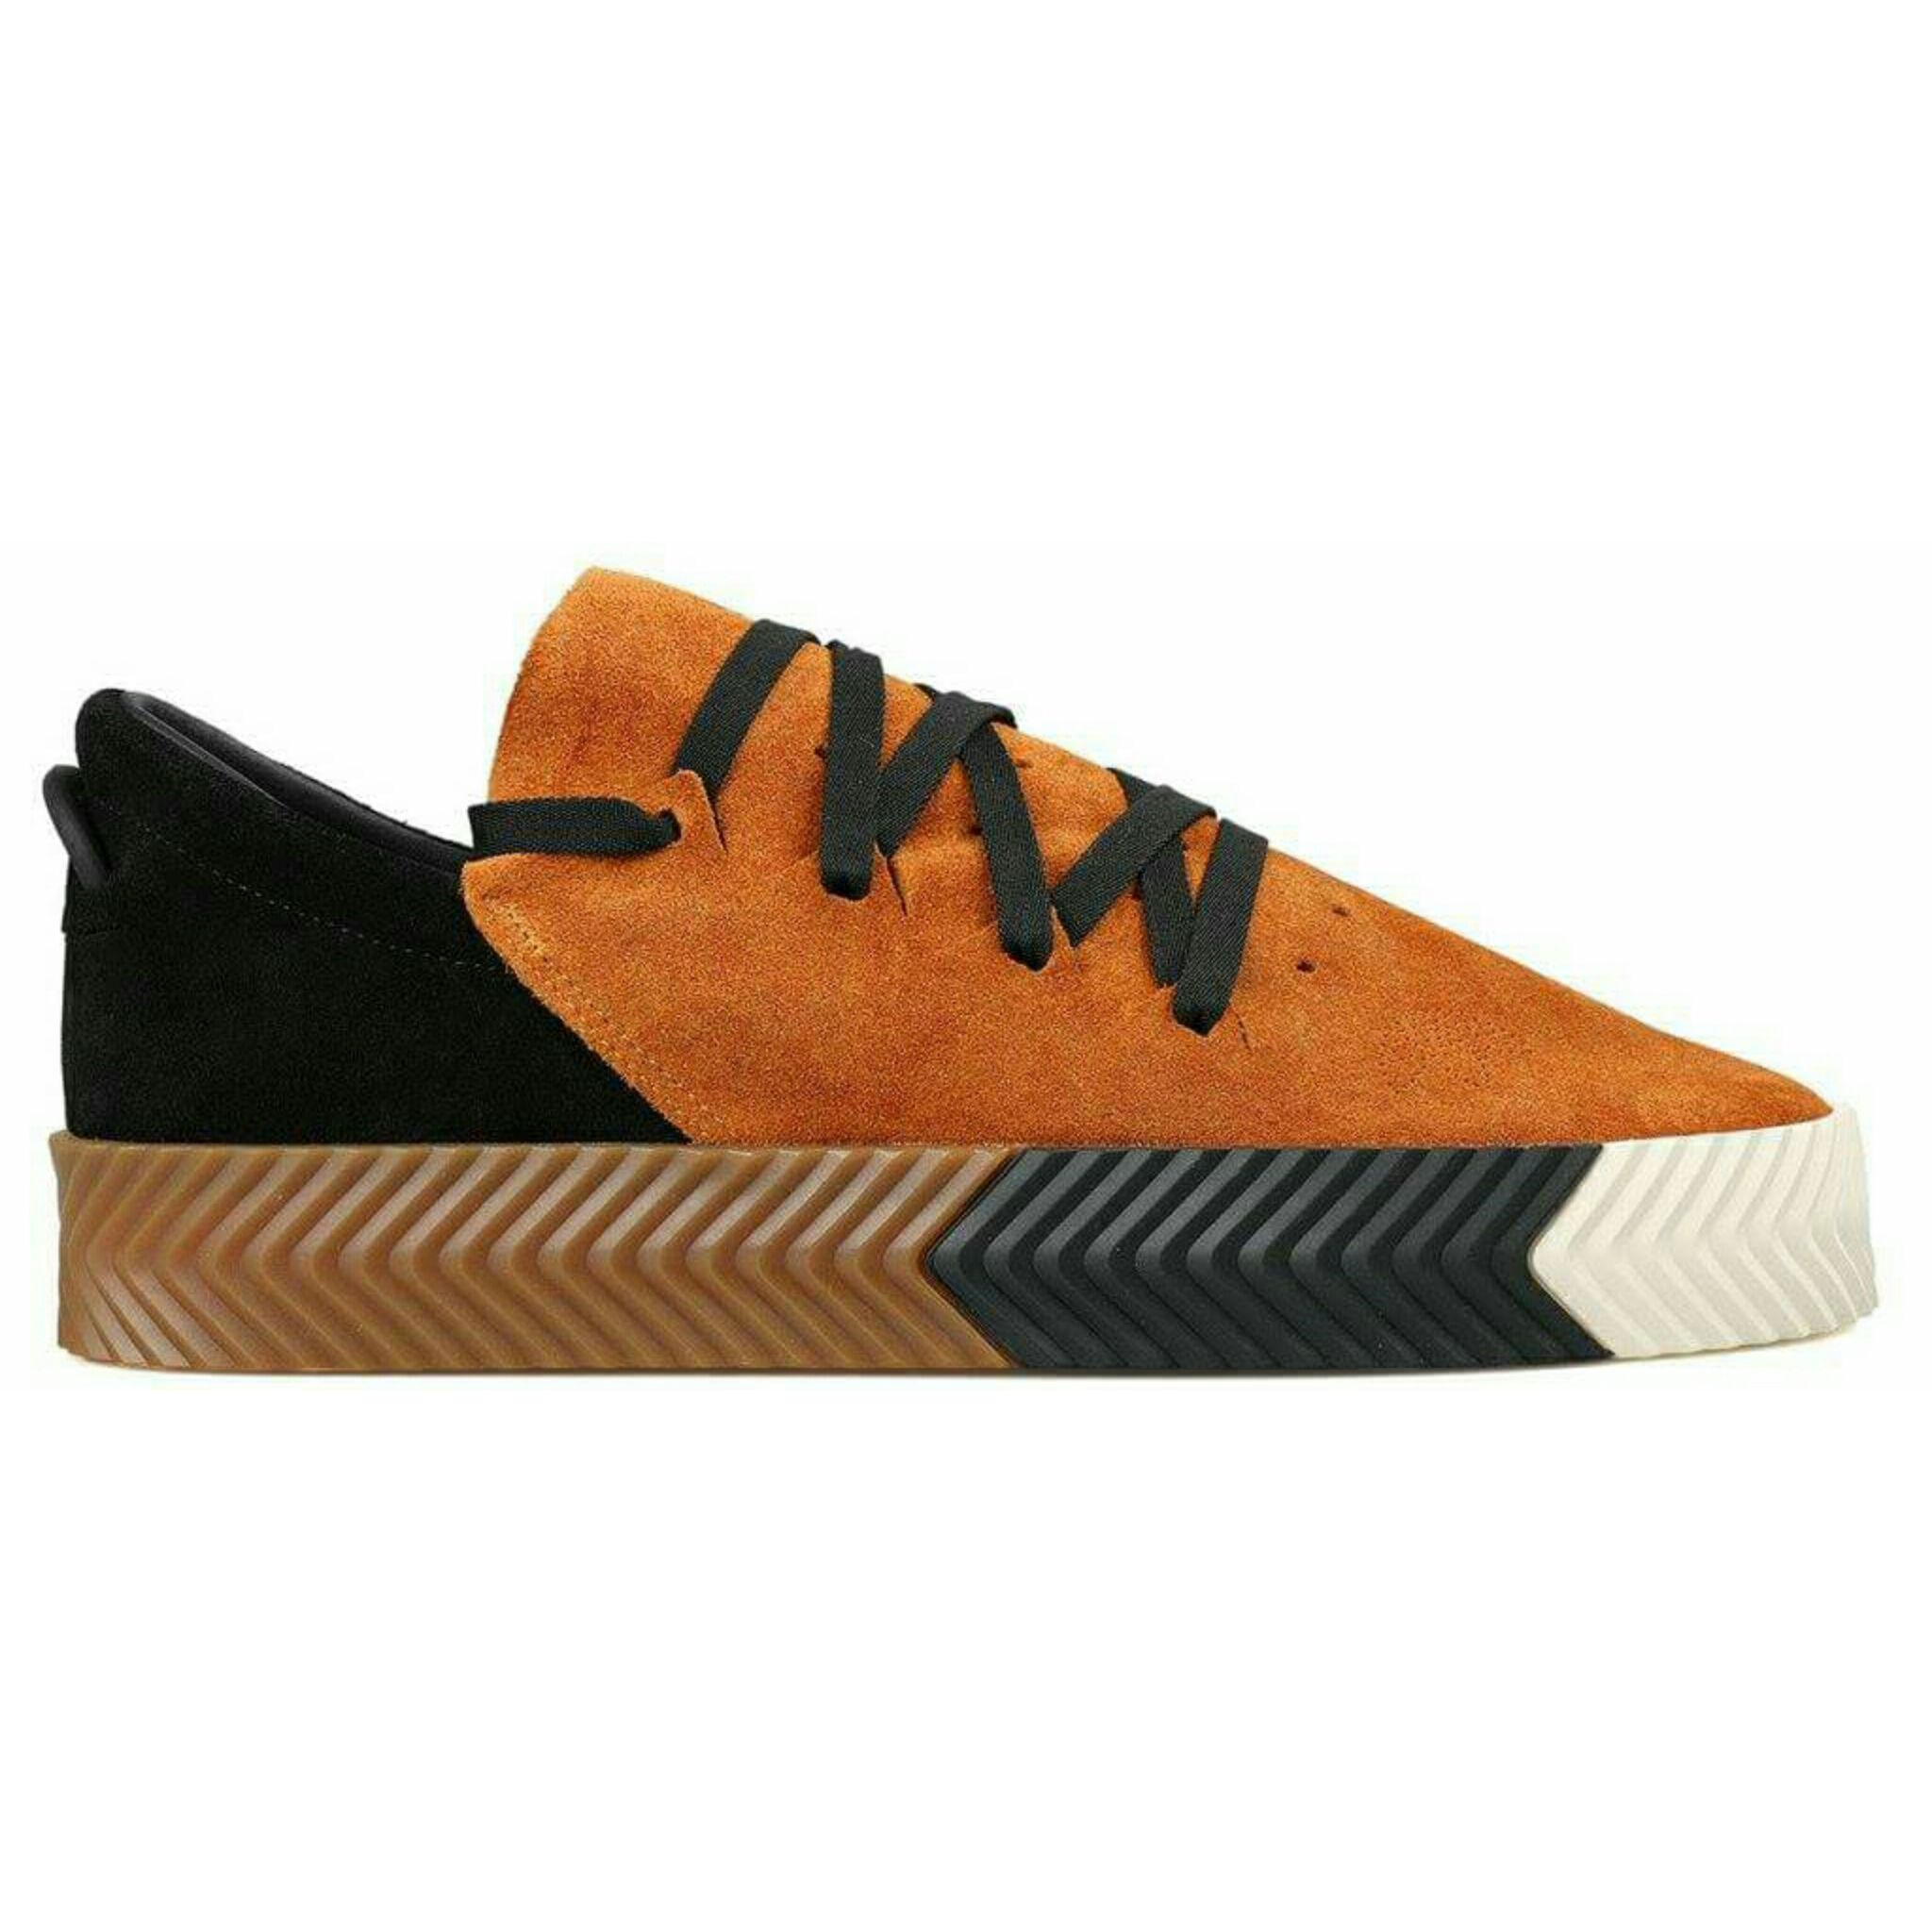 ed439356bfed Adidas Alexander Wang - Buy Shoes Online In Pakistan